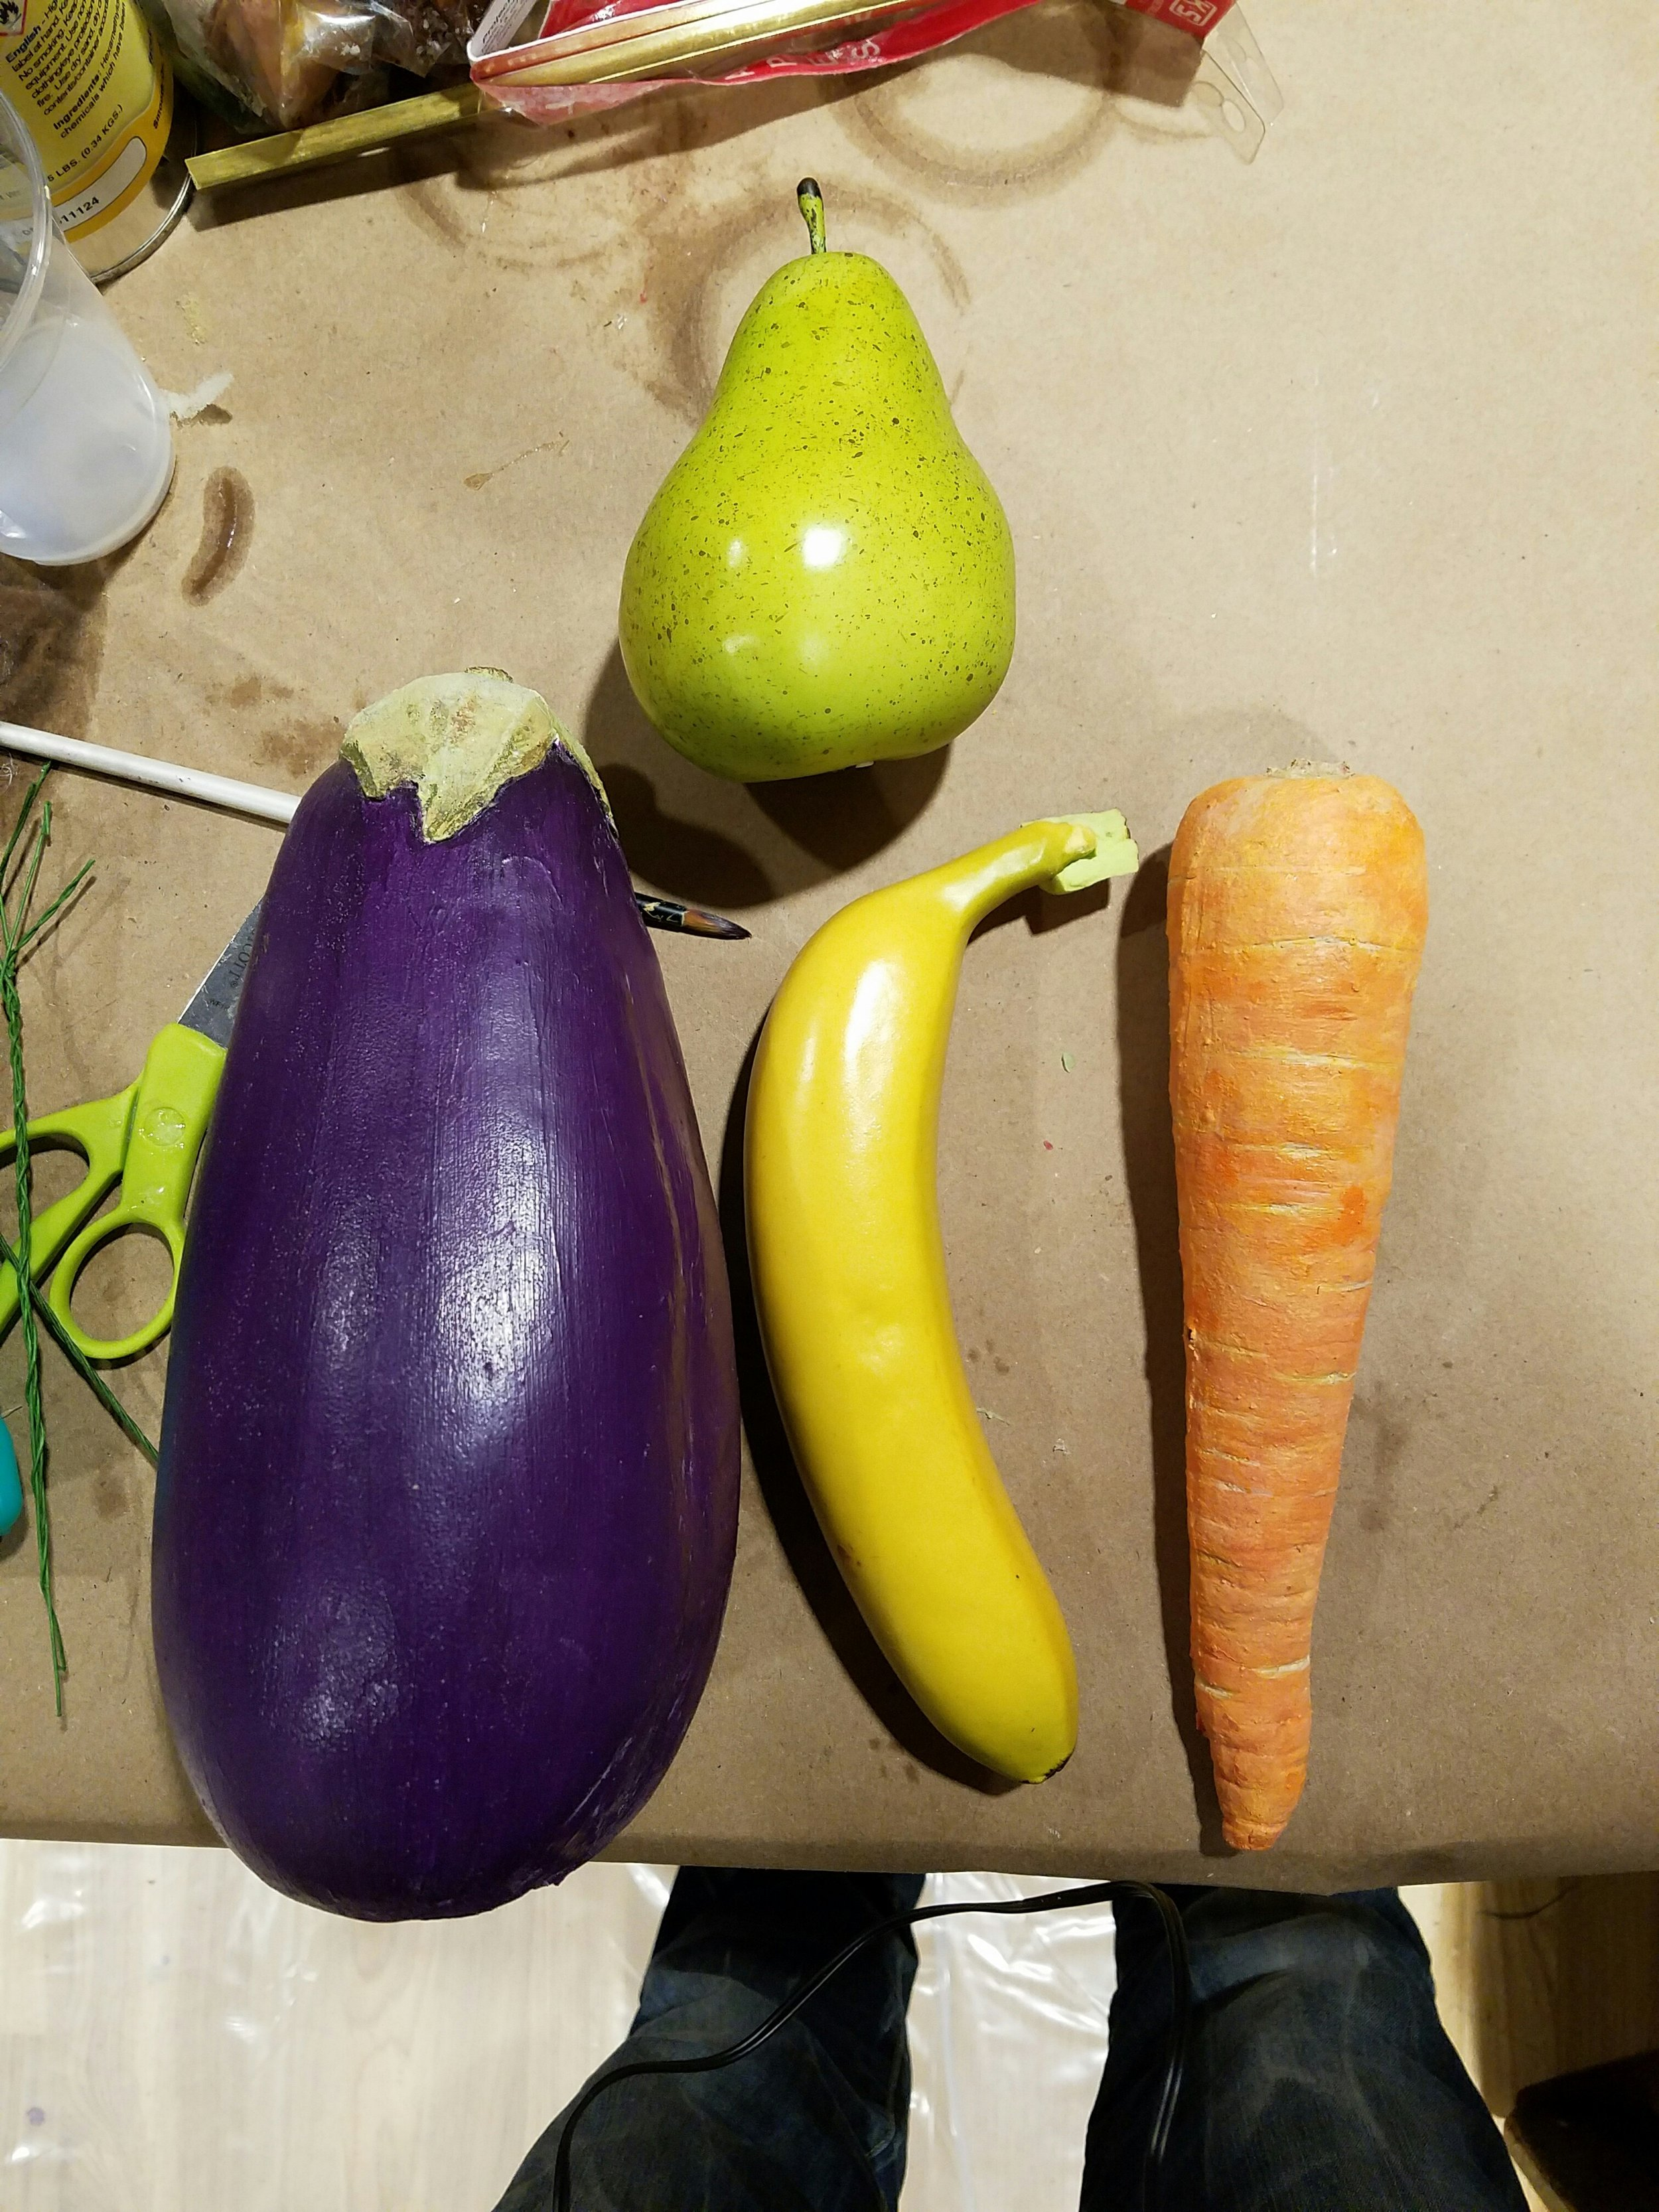 A real eggplant and carrot were molded, and then cast using urethane foam, and painted up to look like the real thing